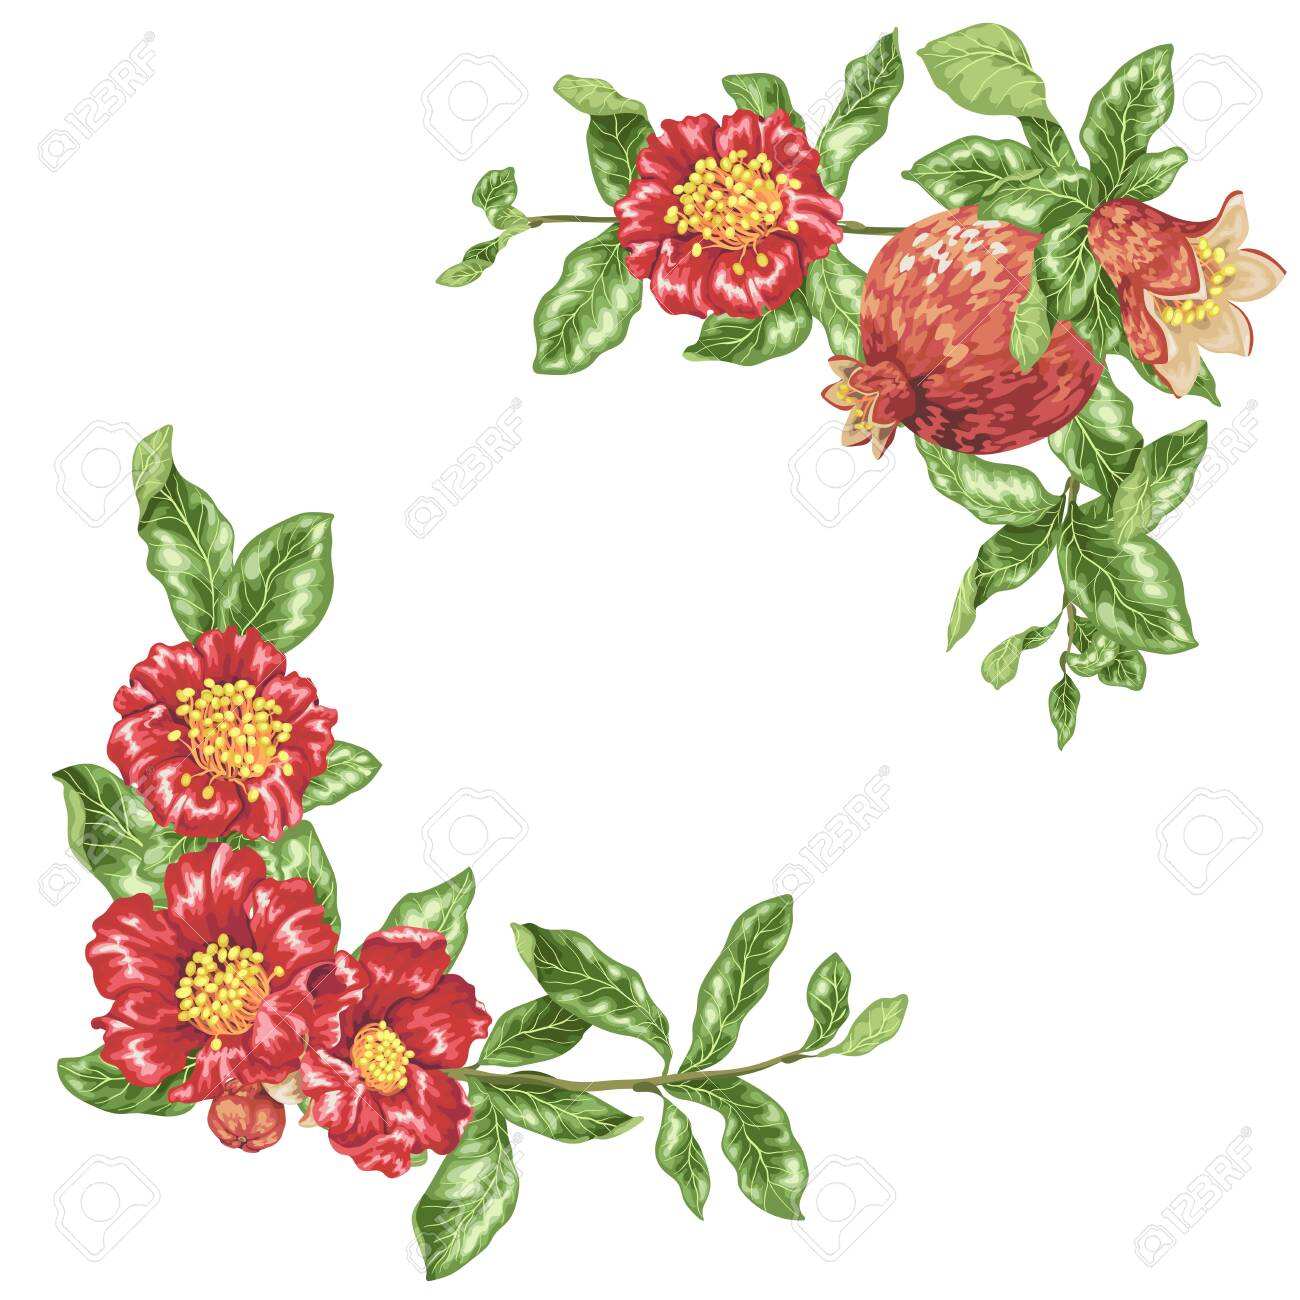 Template in vector illustration with pomegranate flowers in angle decor elements - 121551186